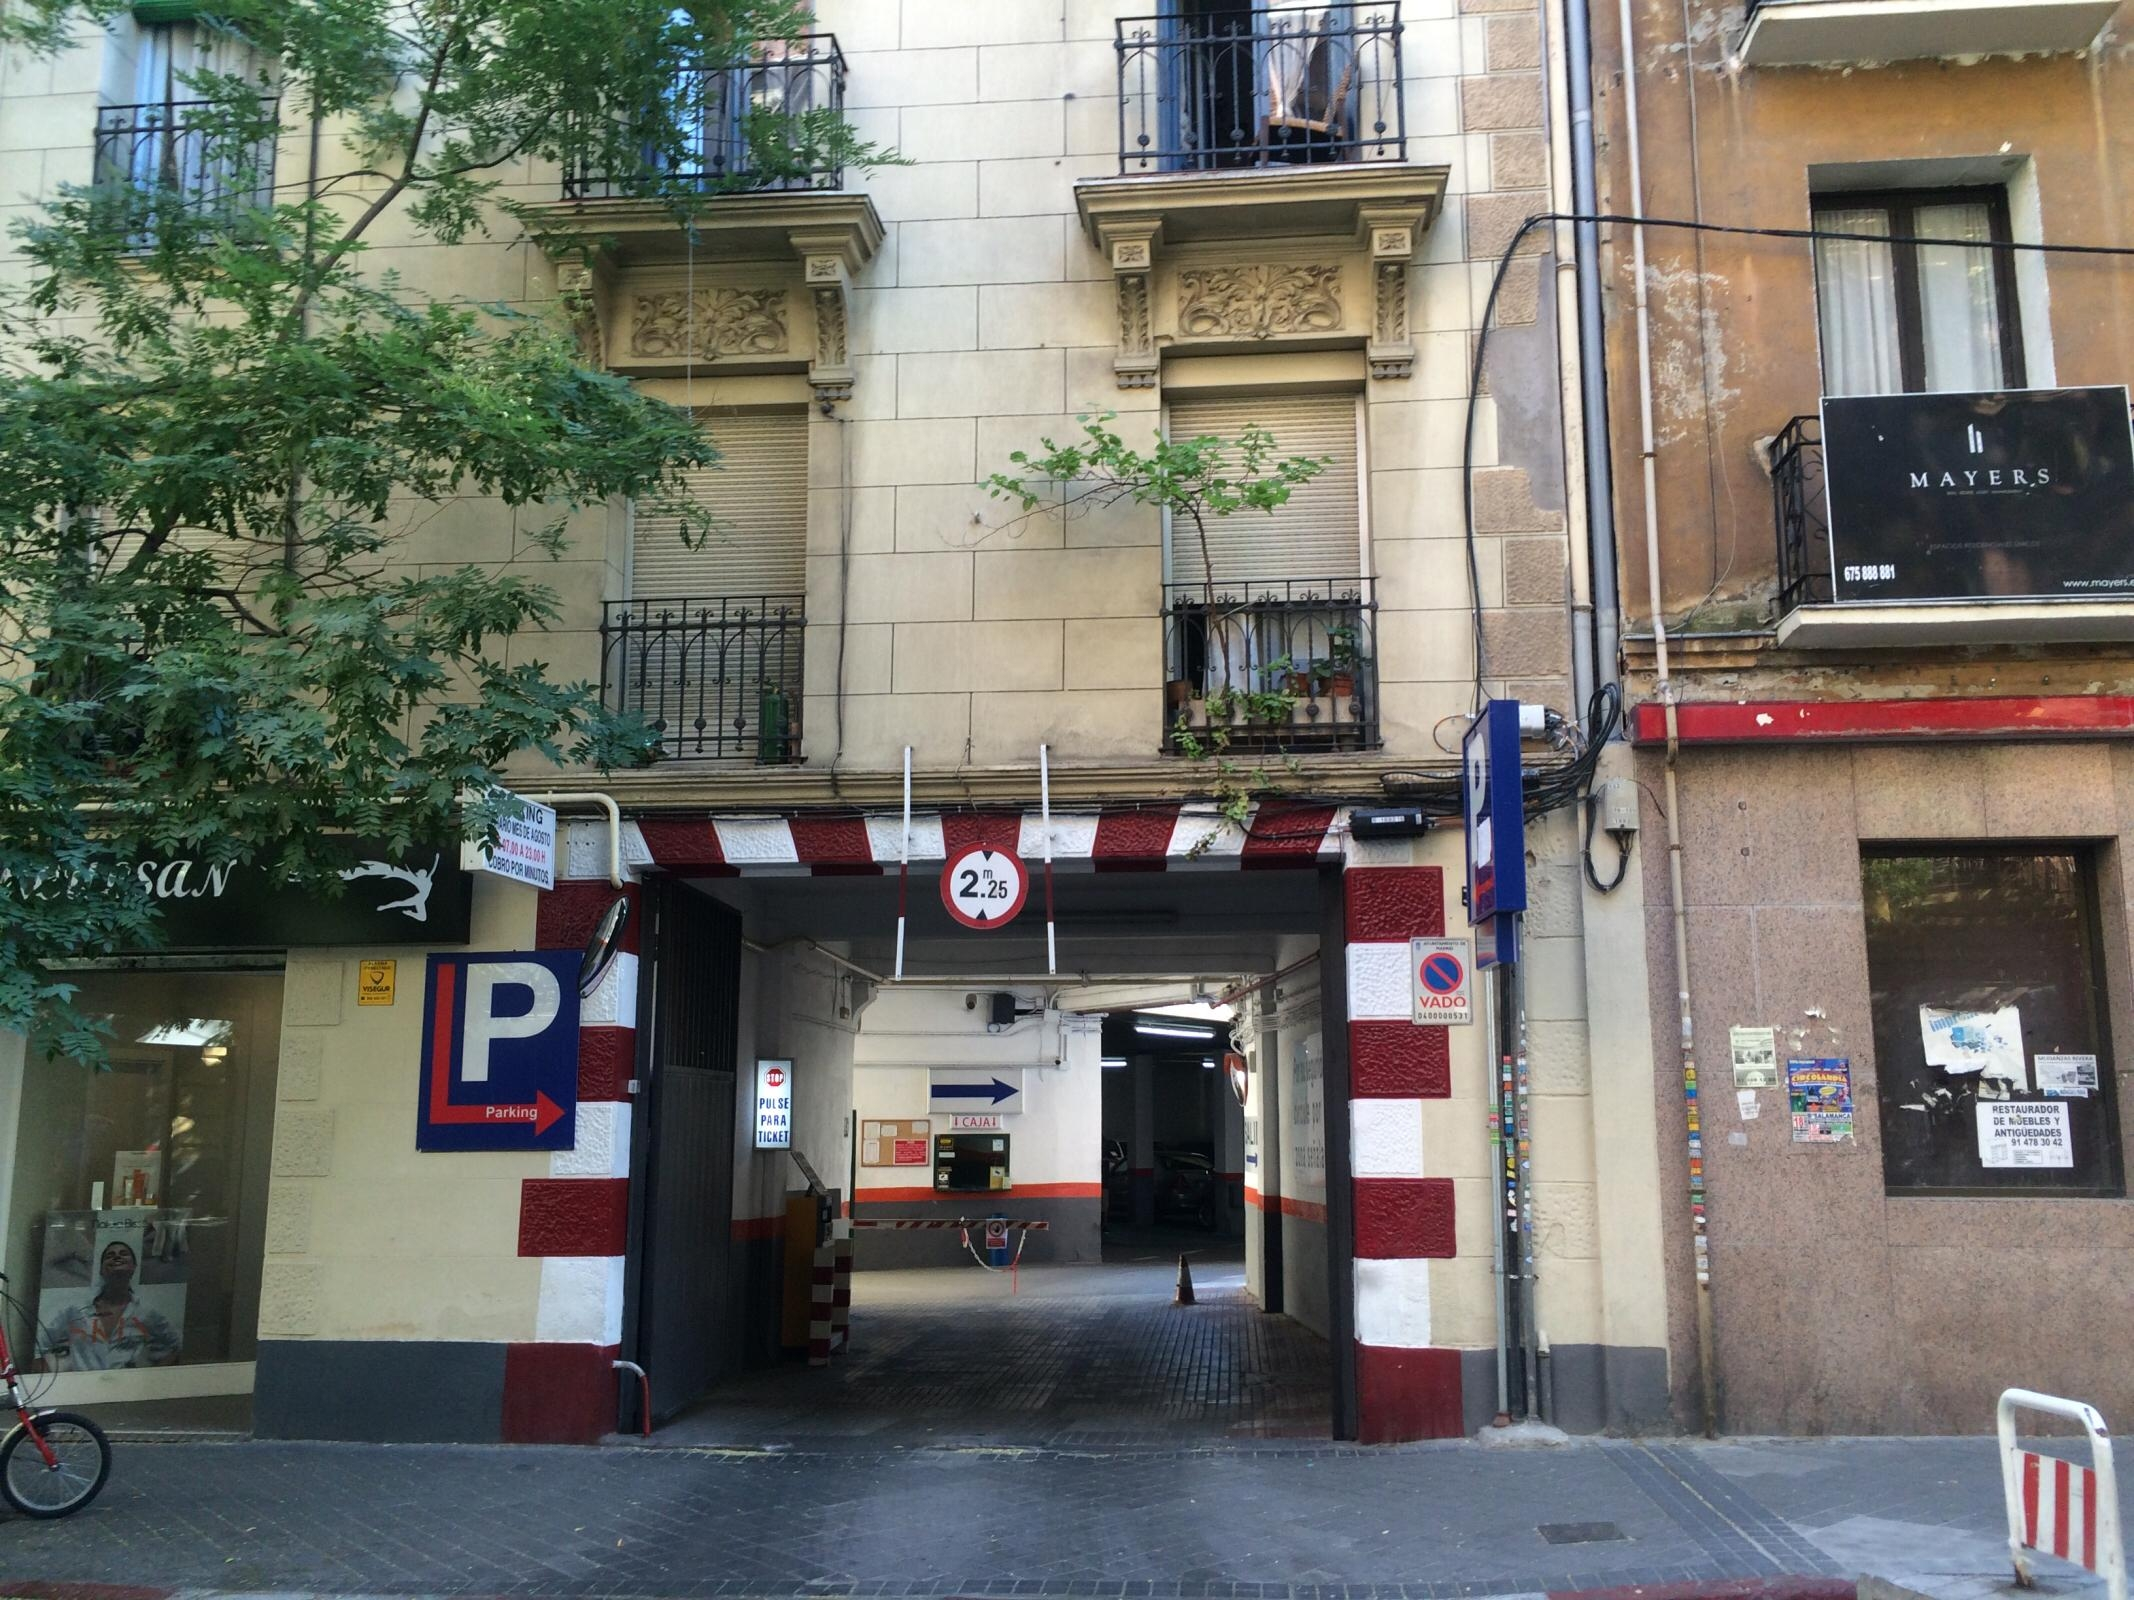 calle de hermosilla 108d garage parking in madrid parkme On calle hermosilla